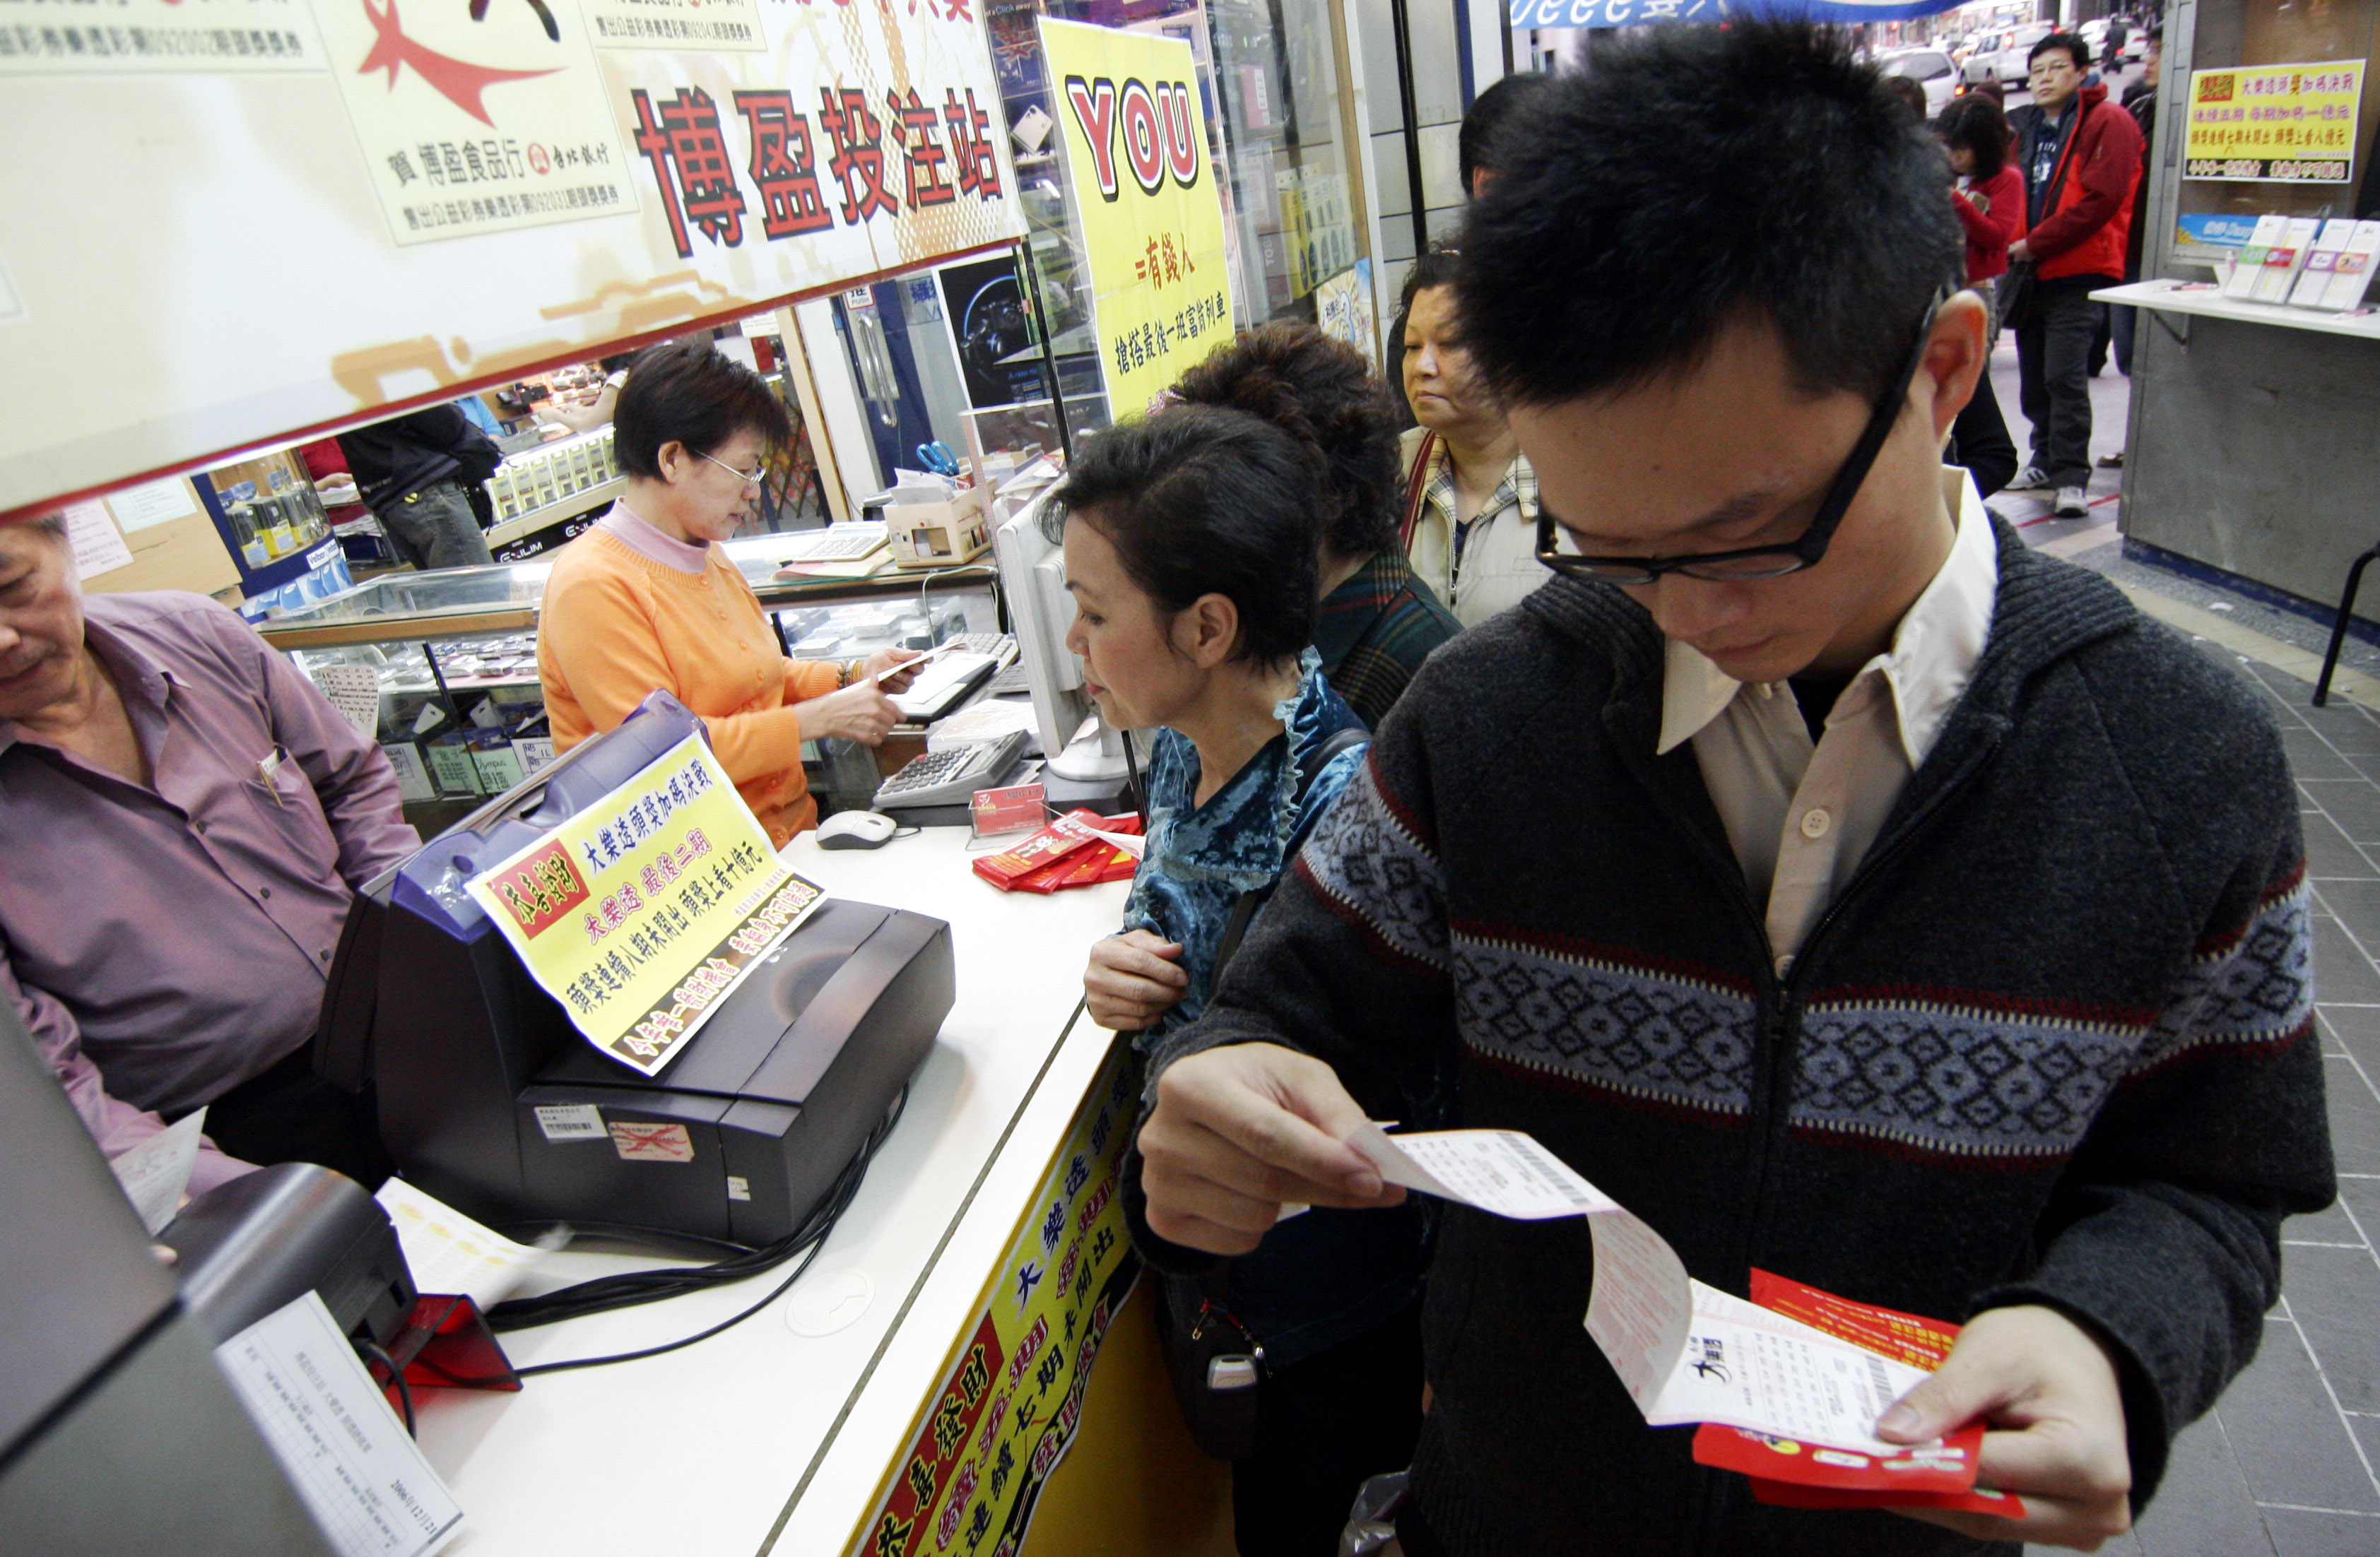 People queue up to buy lottery tickets at a famous lottery counter in Taipei, December 26, 2006. The lottery offers a top prize of at least 9 hundred ...